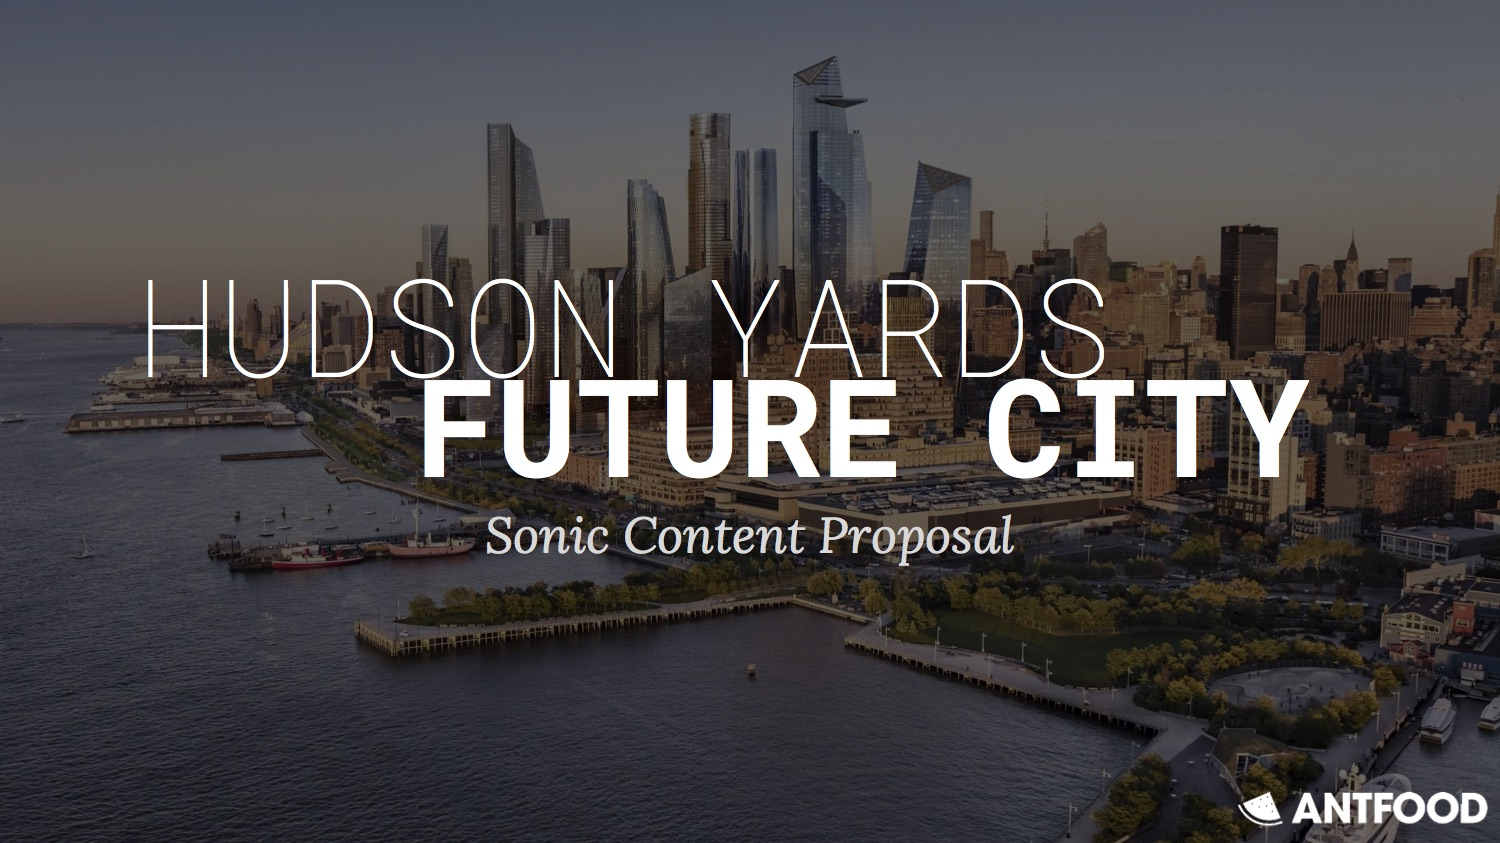 HudsonYards_FutureCity.jpg